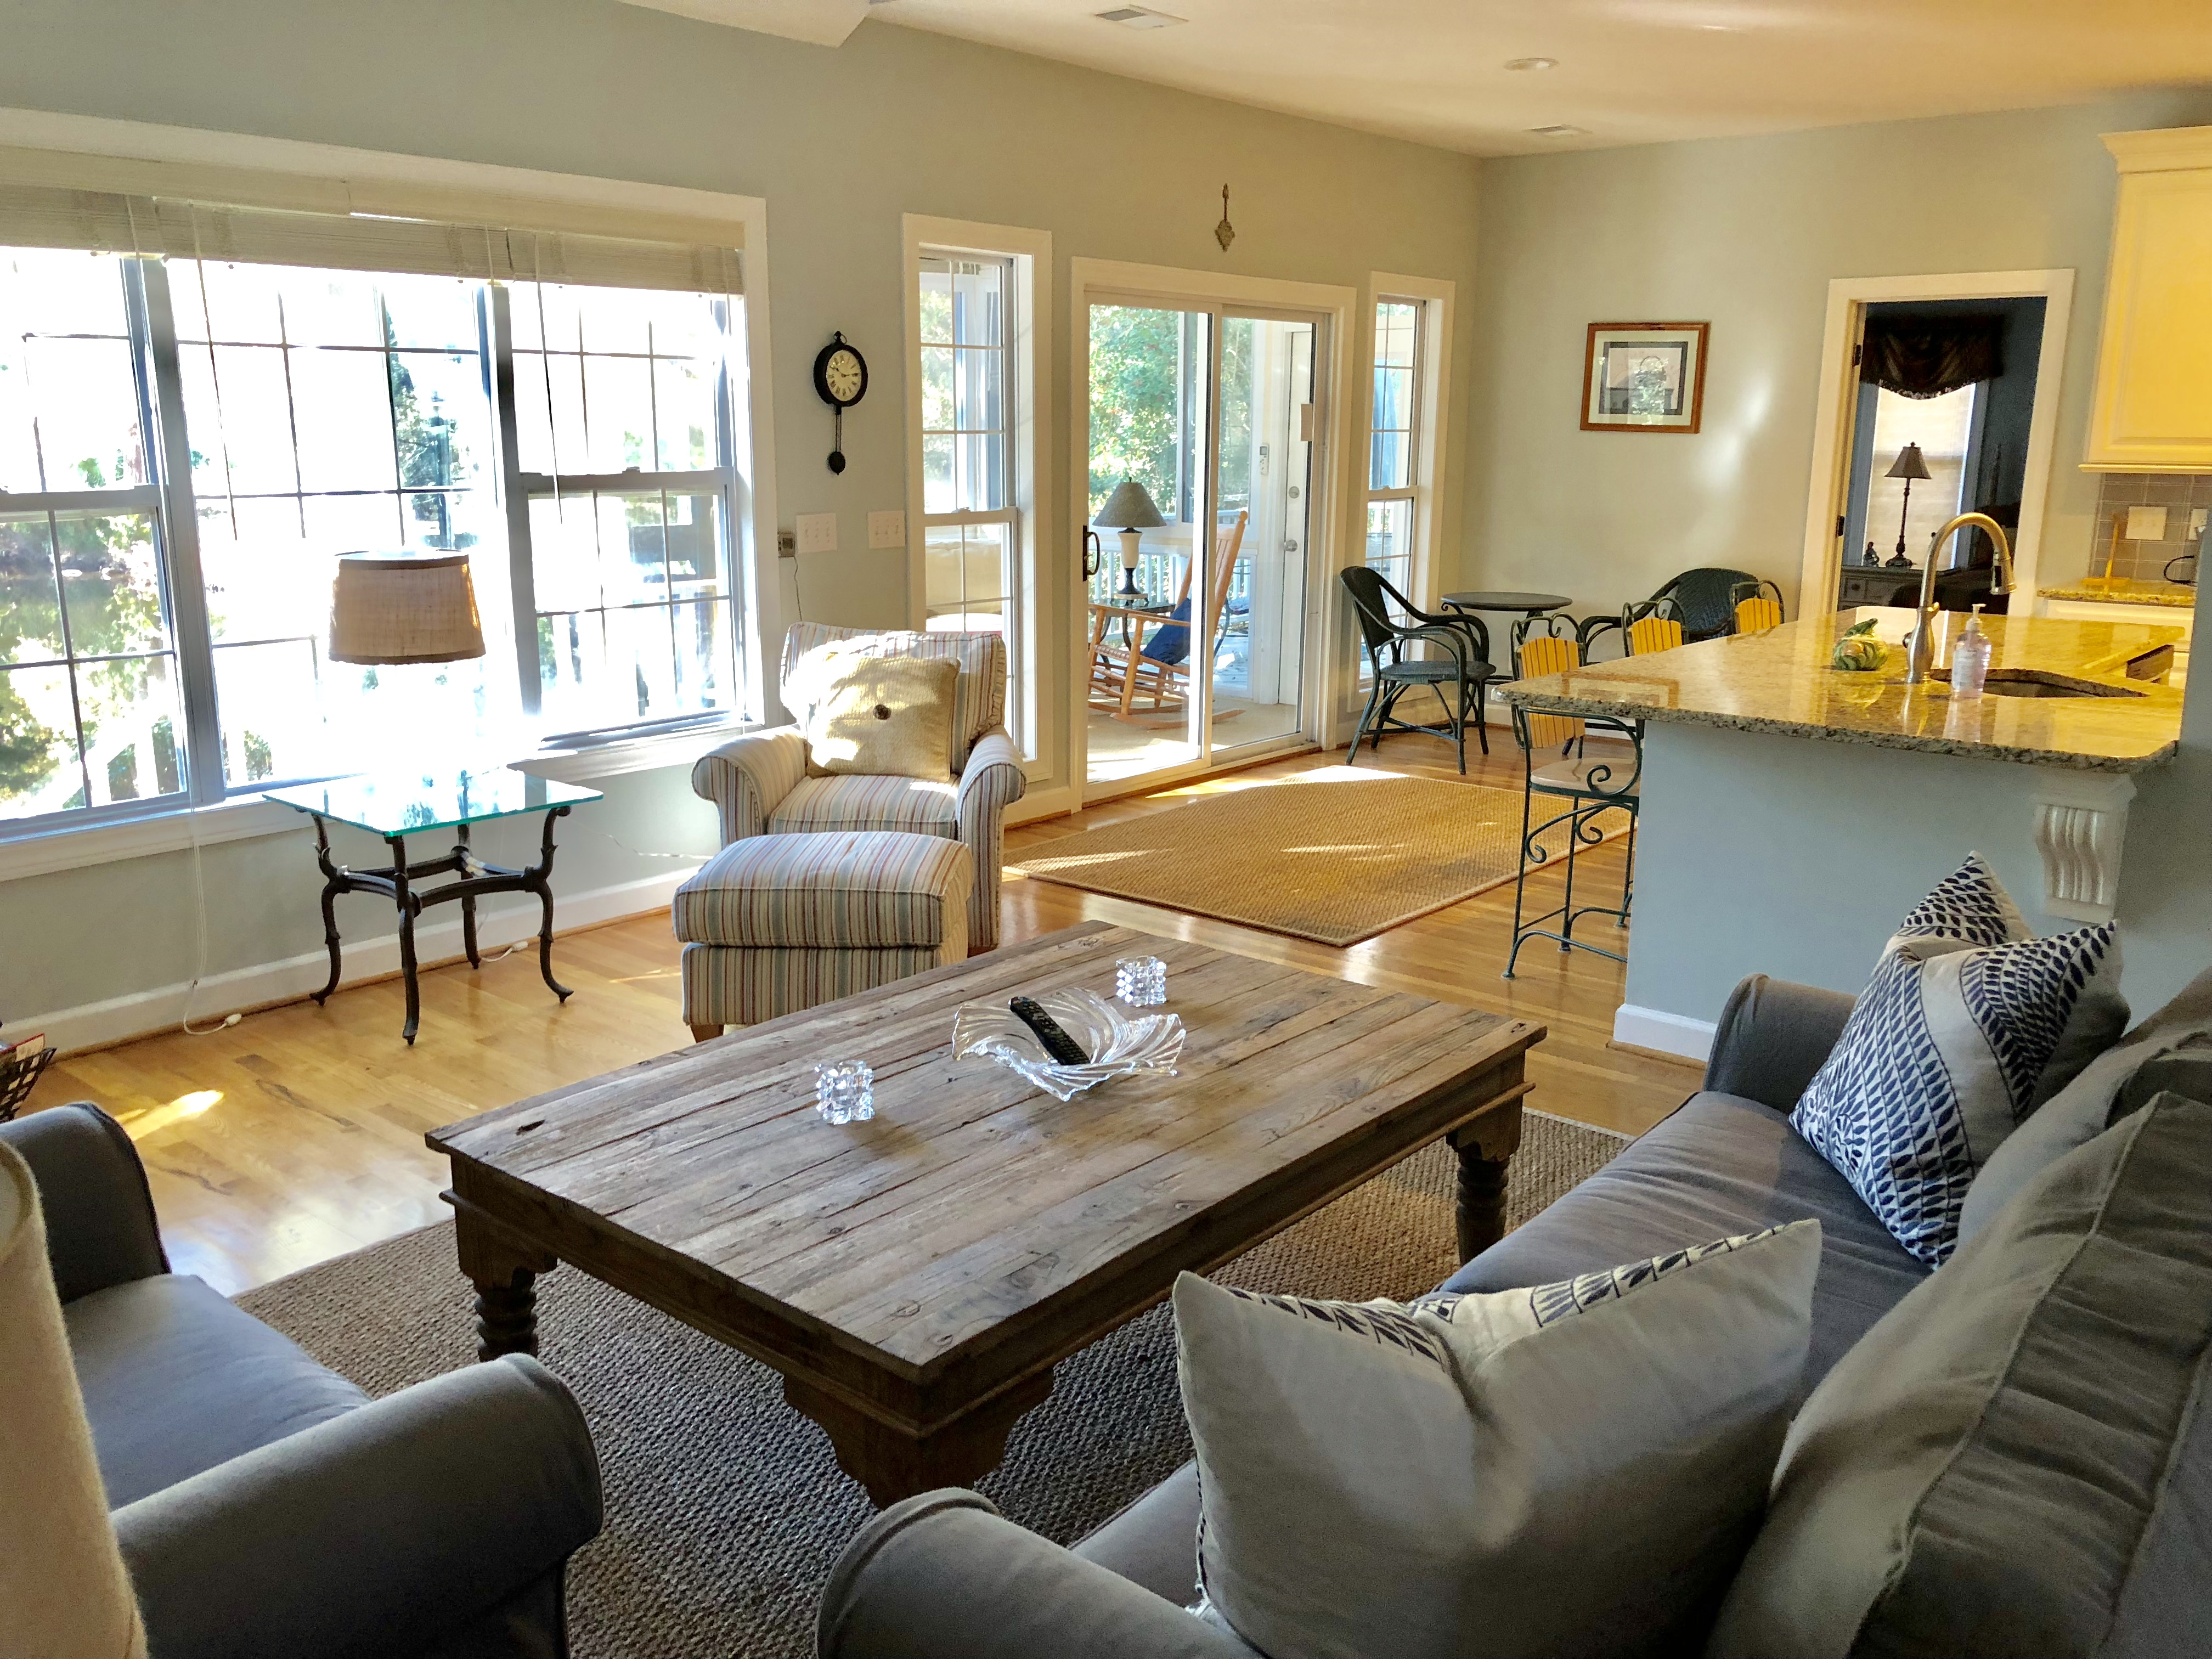 The living area is to the dining room and remodeled kitchen.